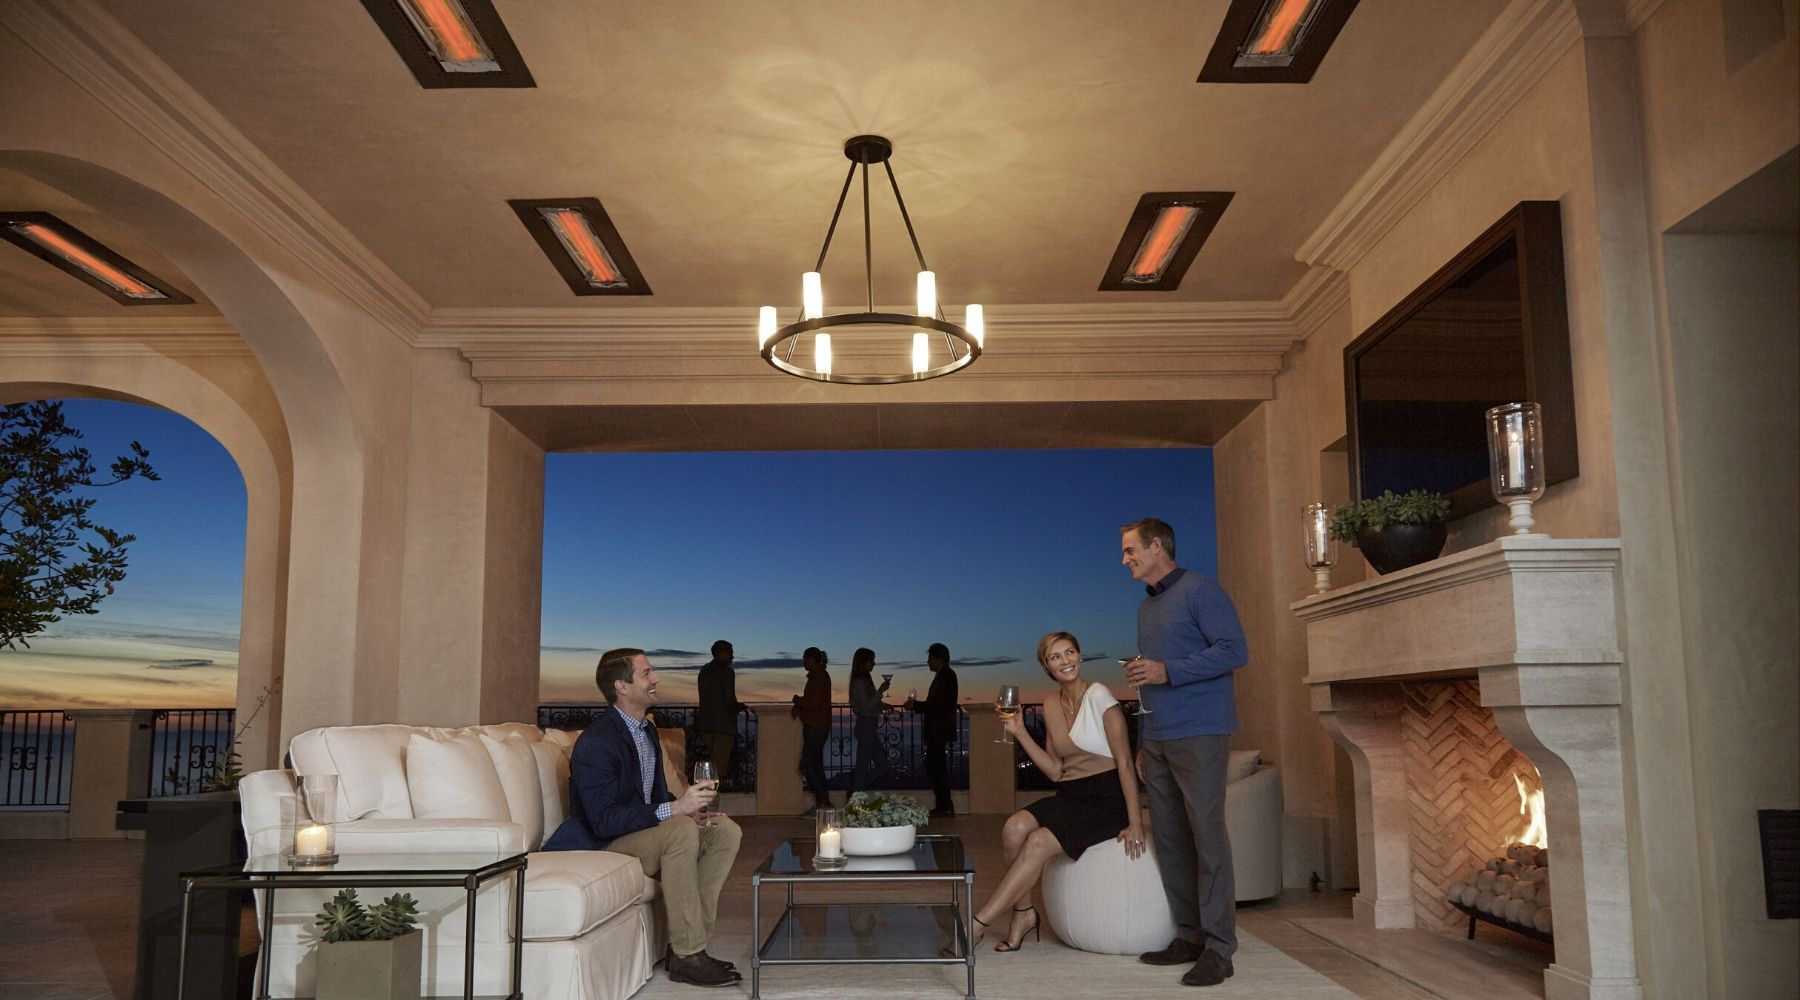 How to Choose the Best Electric Patio Heater?